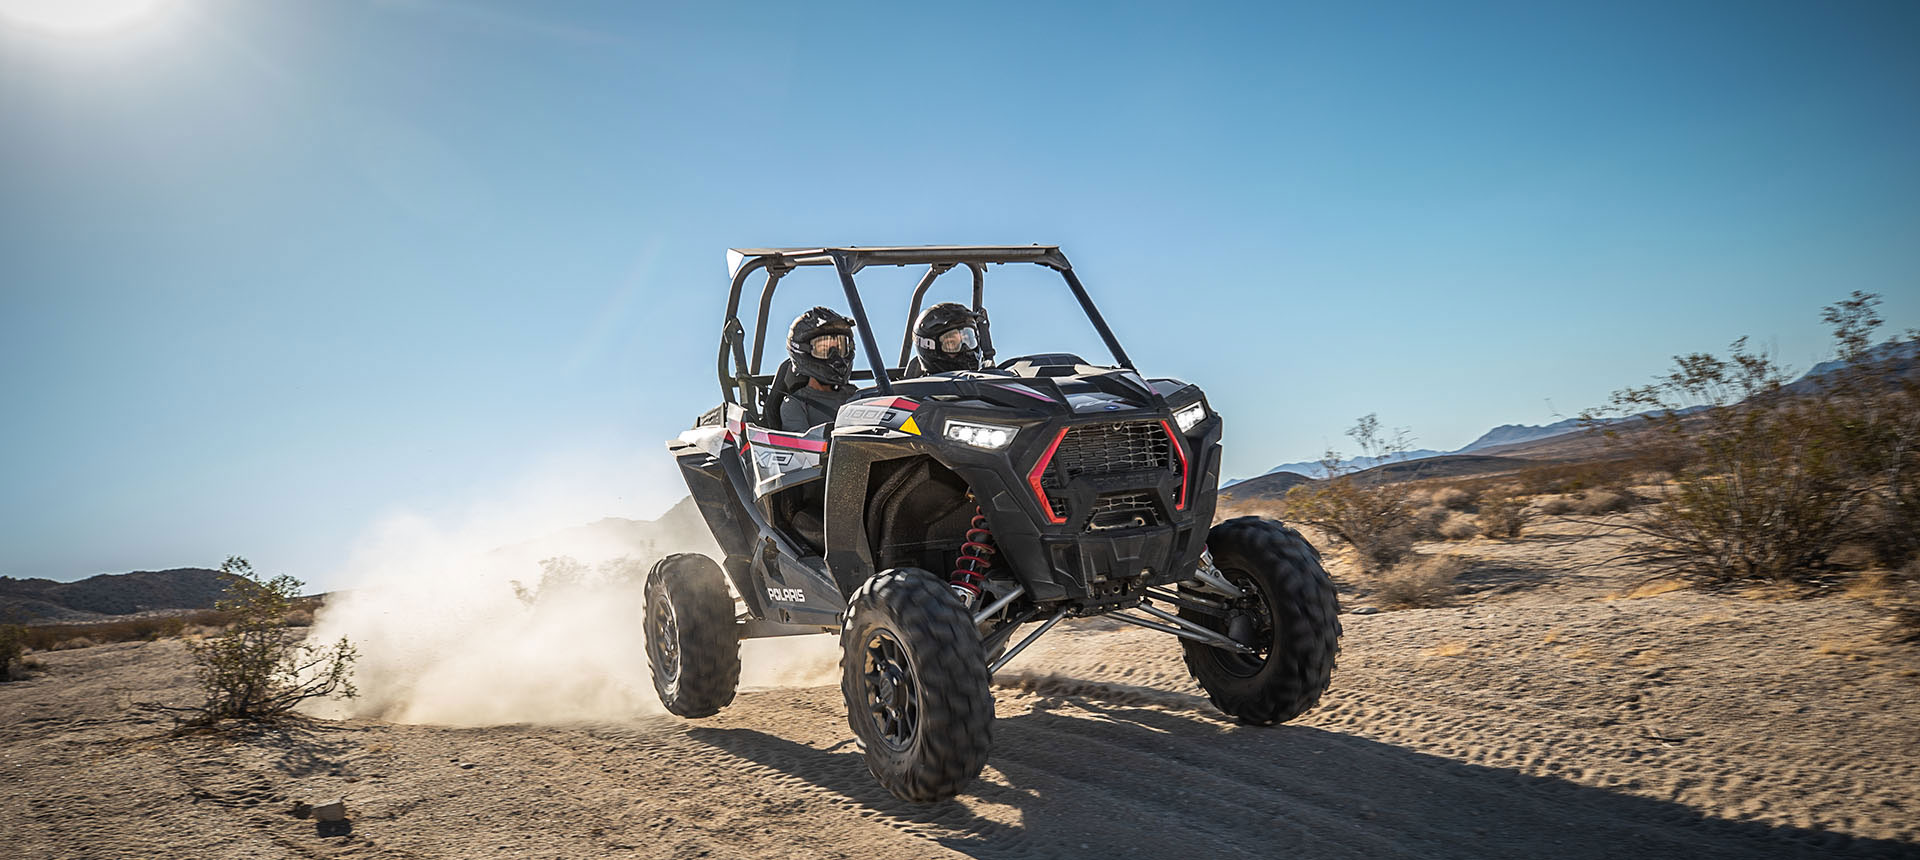 2019 Polaris RZR XP 1000 in Santa Maria, California - Photo 8